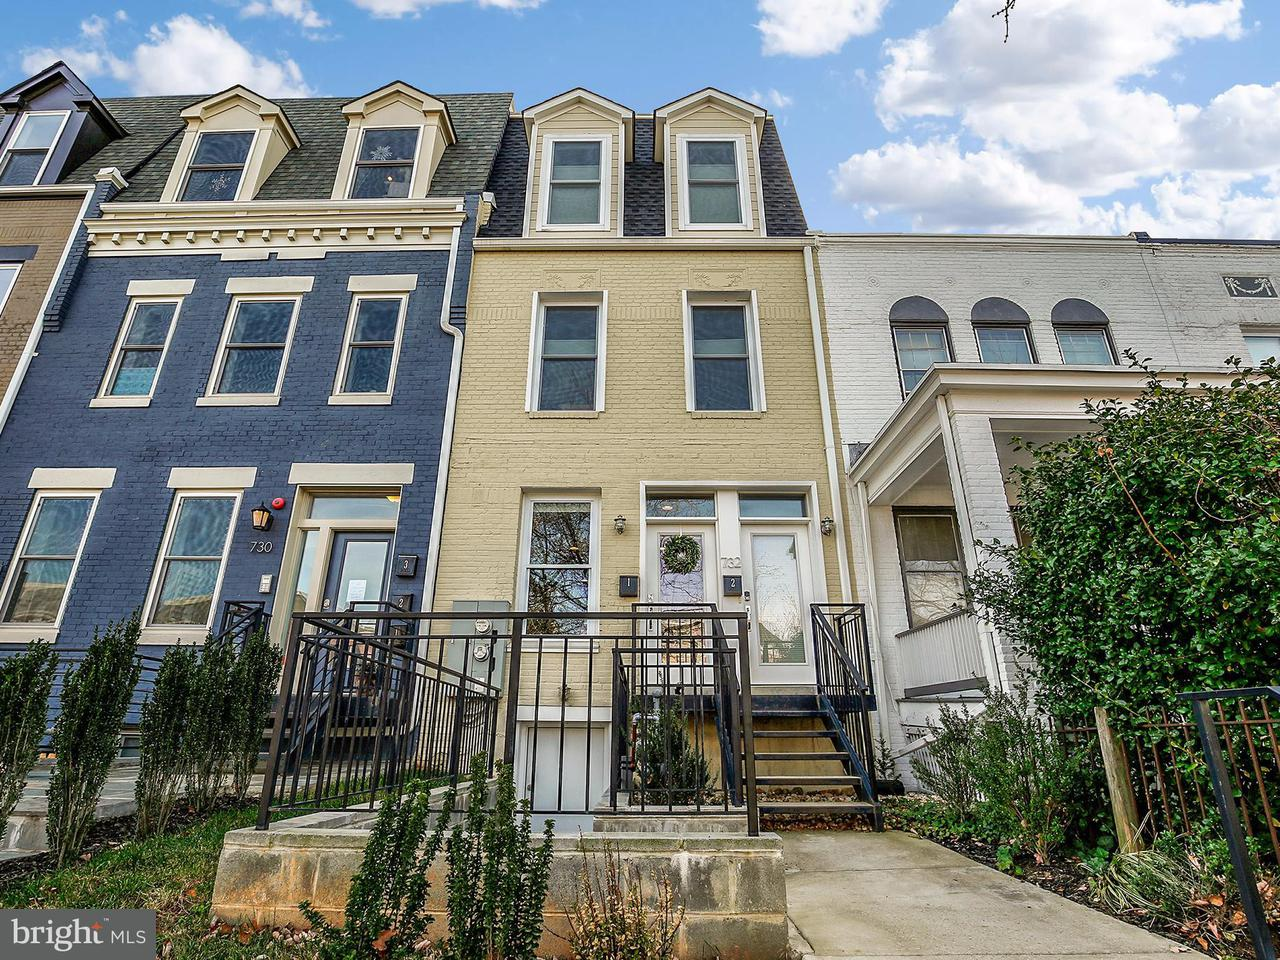 Townhouse for Sale at 732 GIRARD ST NW #1 732 GIRARD ST NW #1 Washington, District Of Columbia 20001 United States